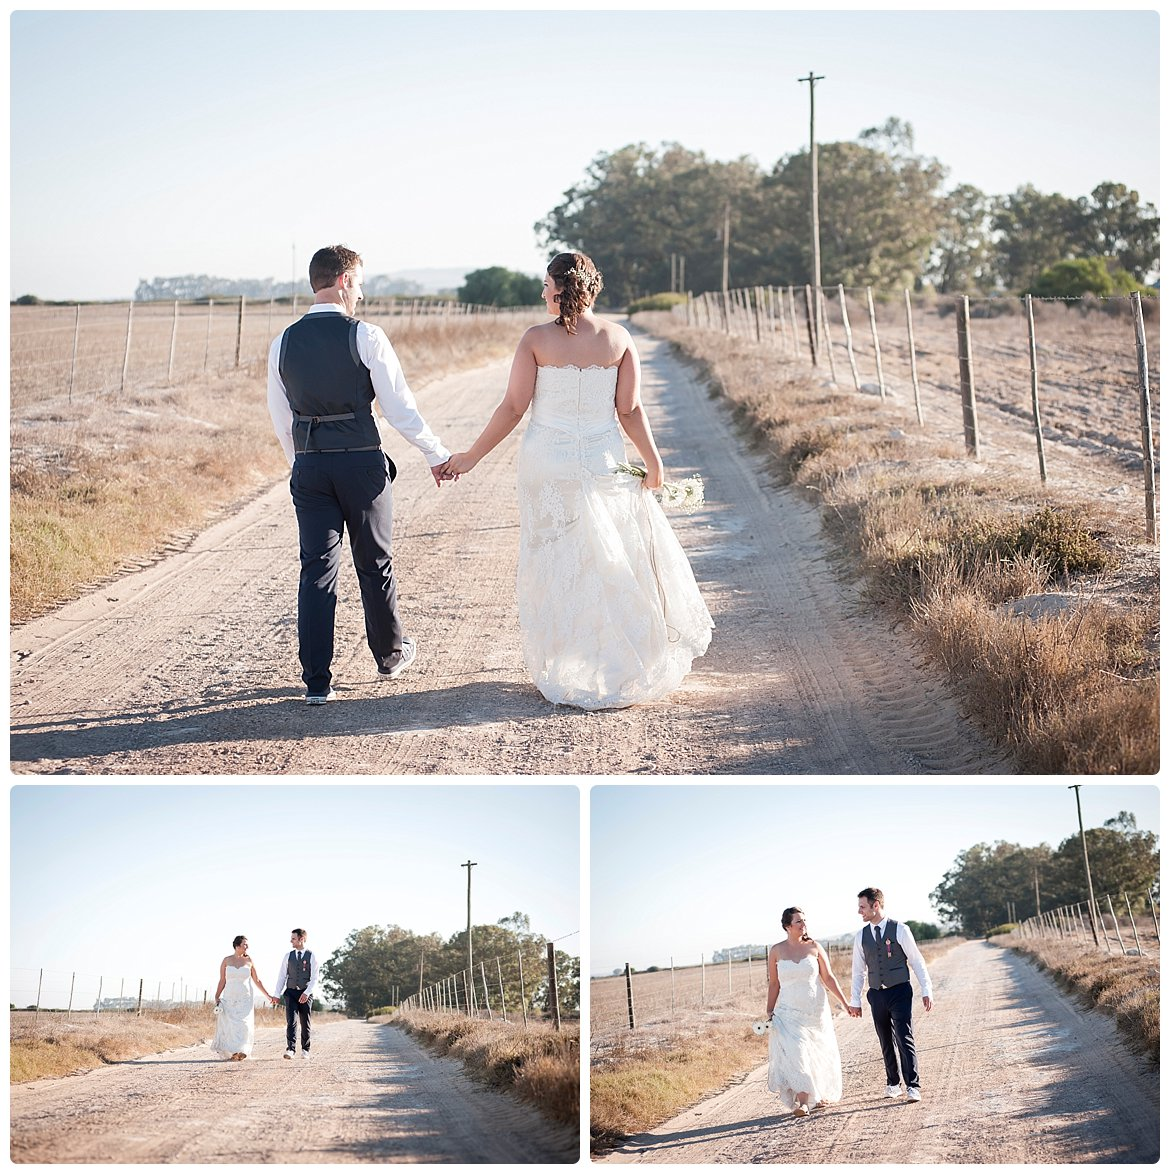 cape-town-wedding-photographer-schaftplaas-langebaan-0028